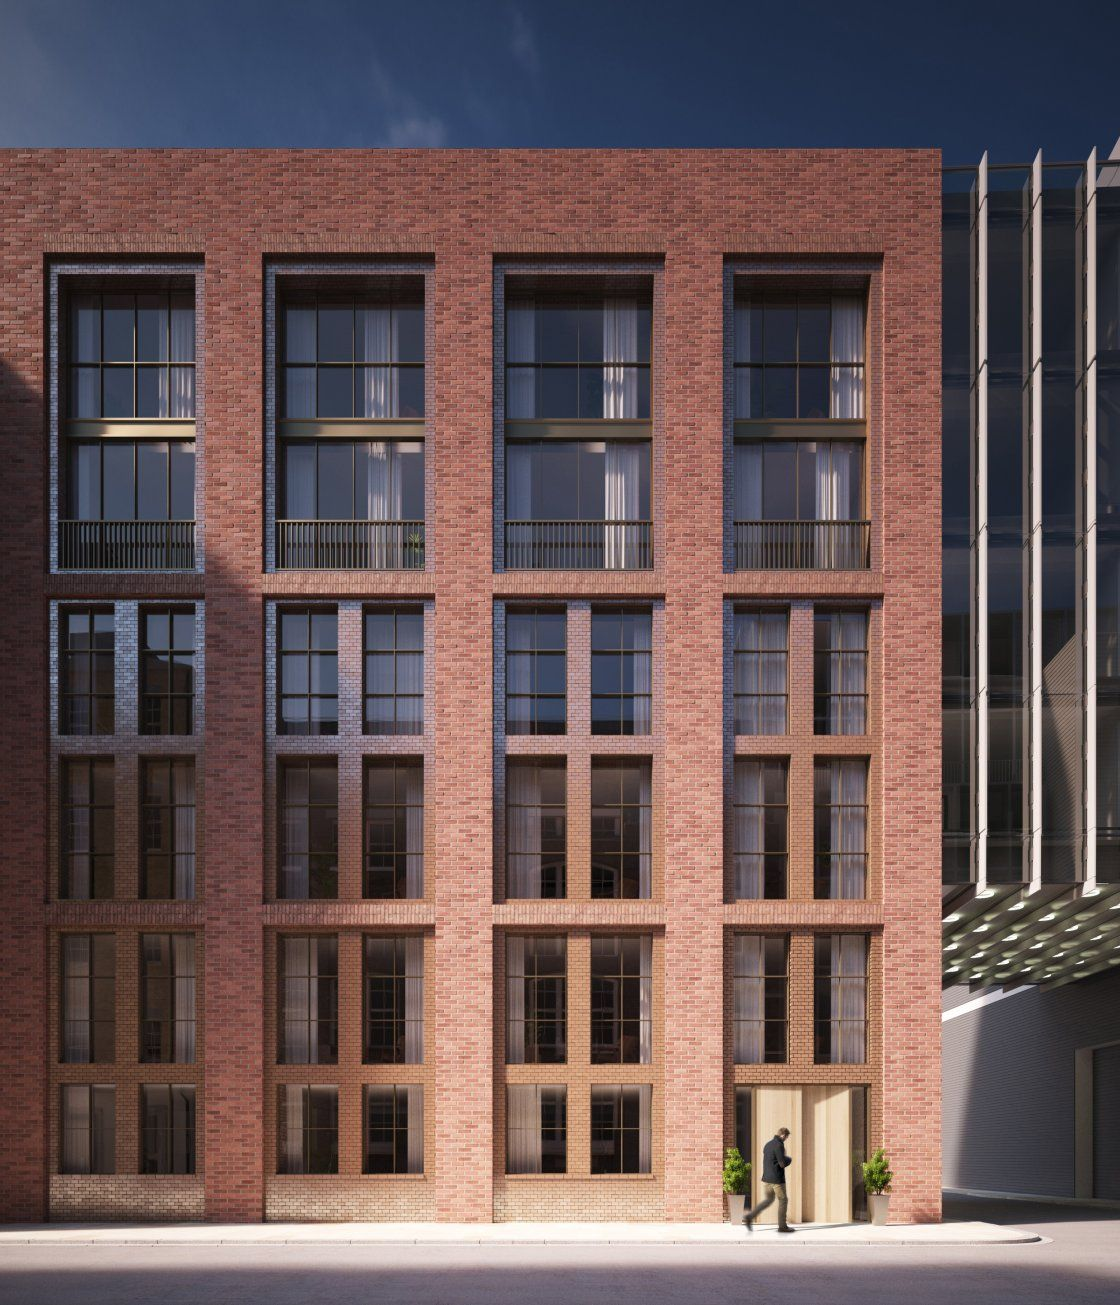 Cheap Apartments Outside Bricks: Sheppard Robson - Barts Square, EC1